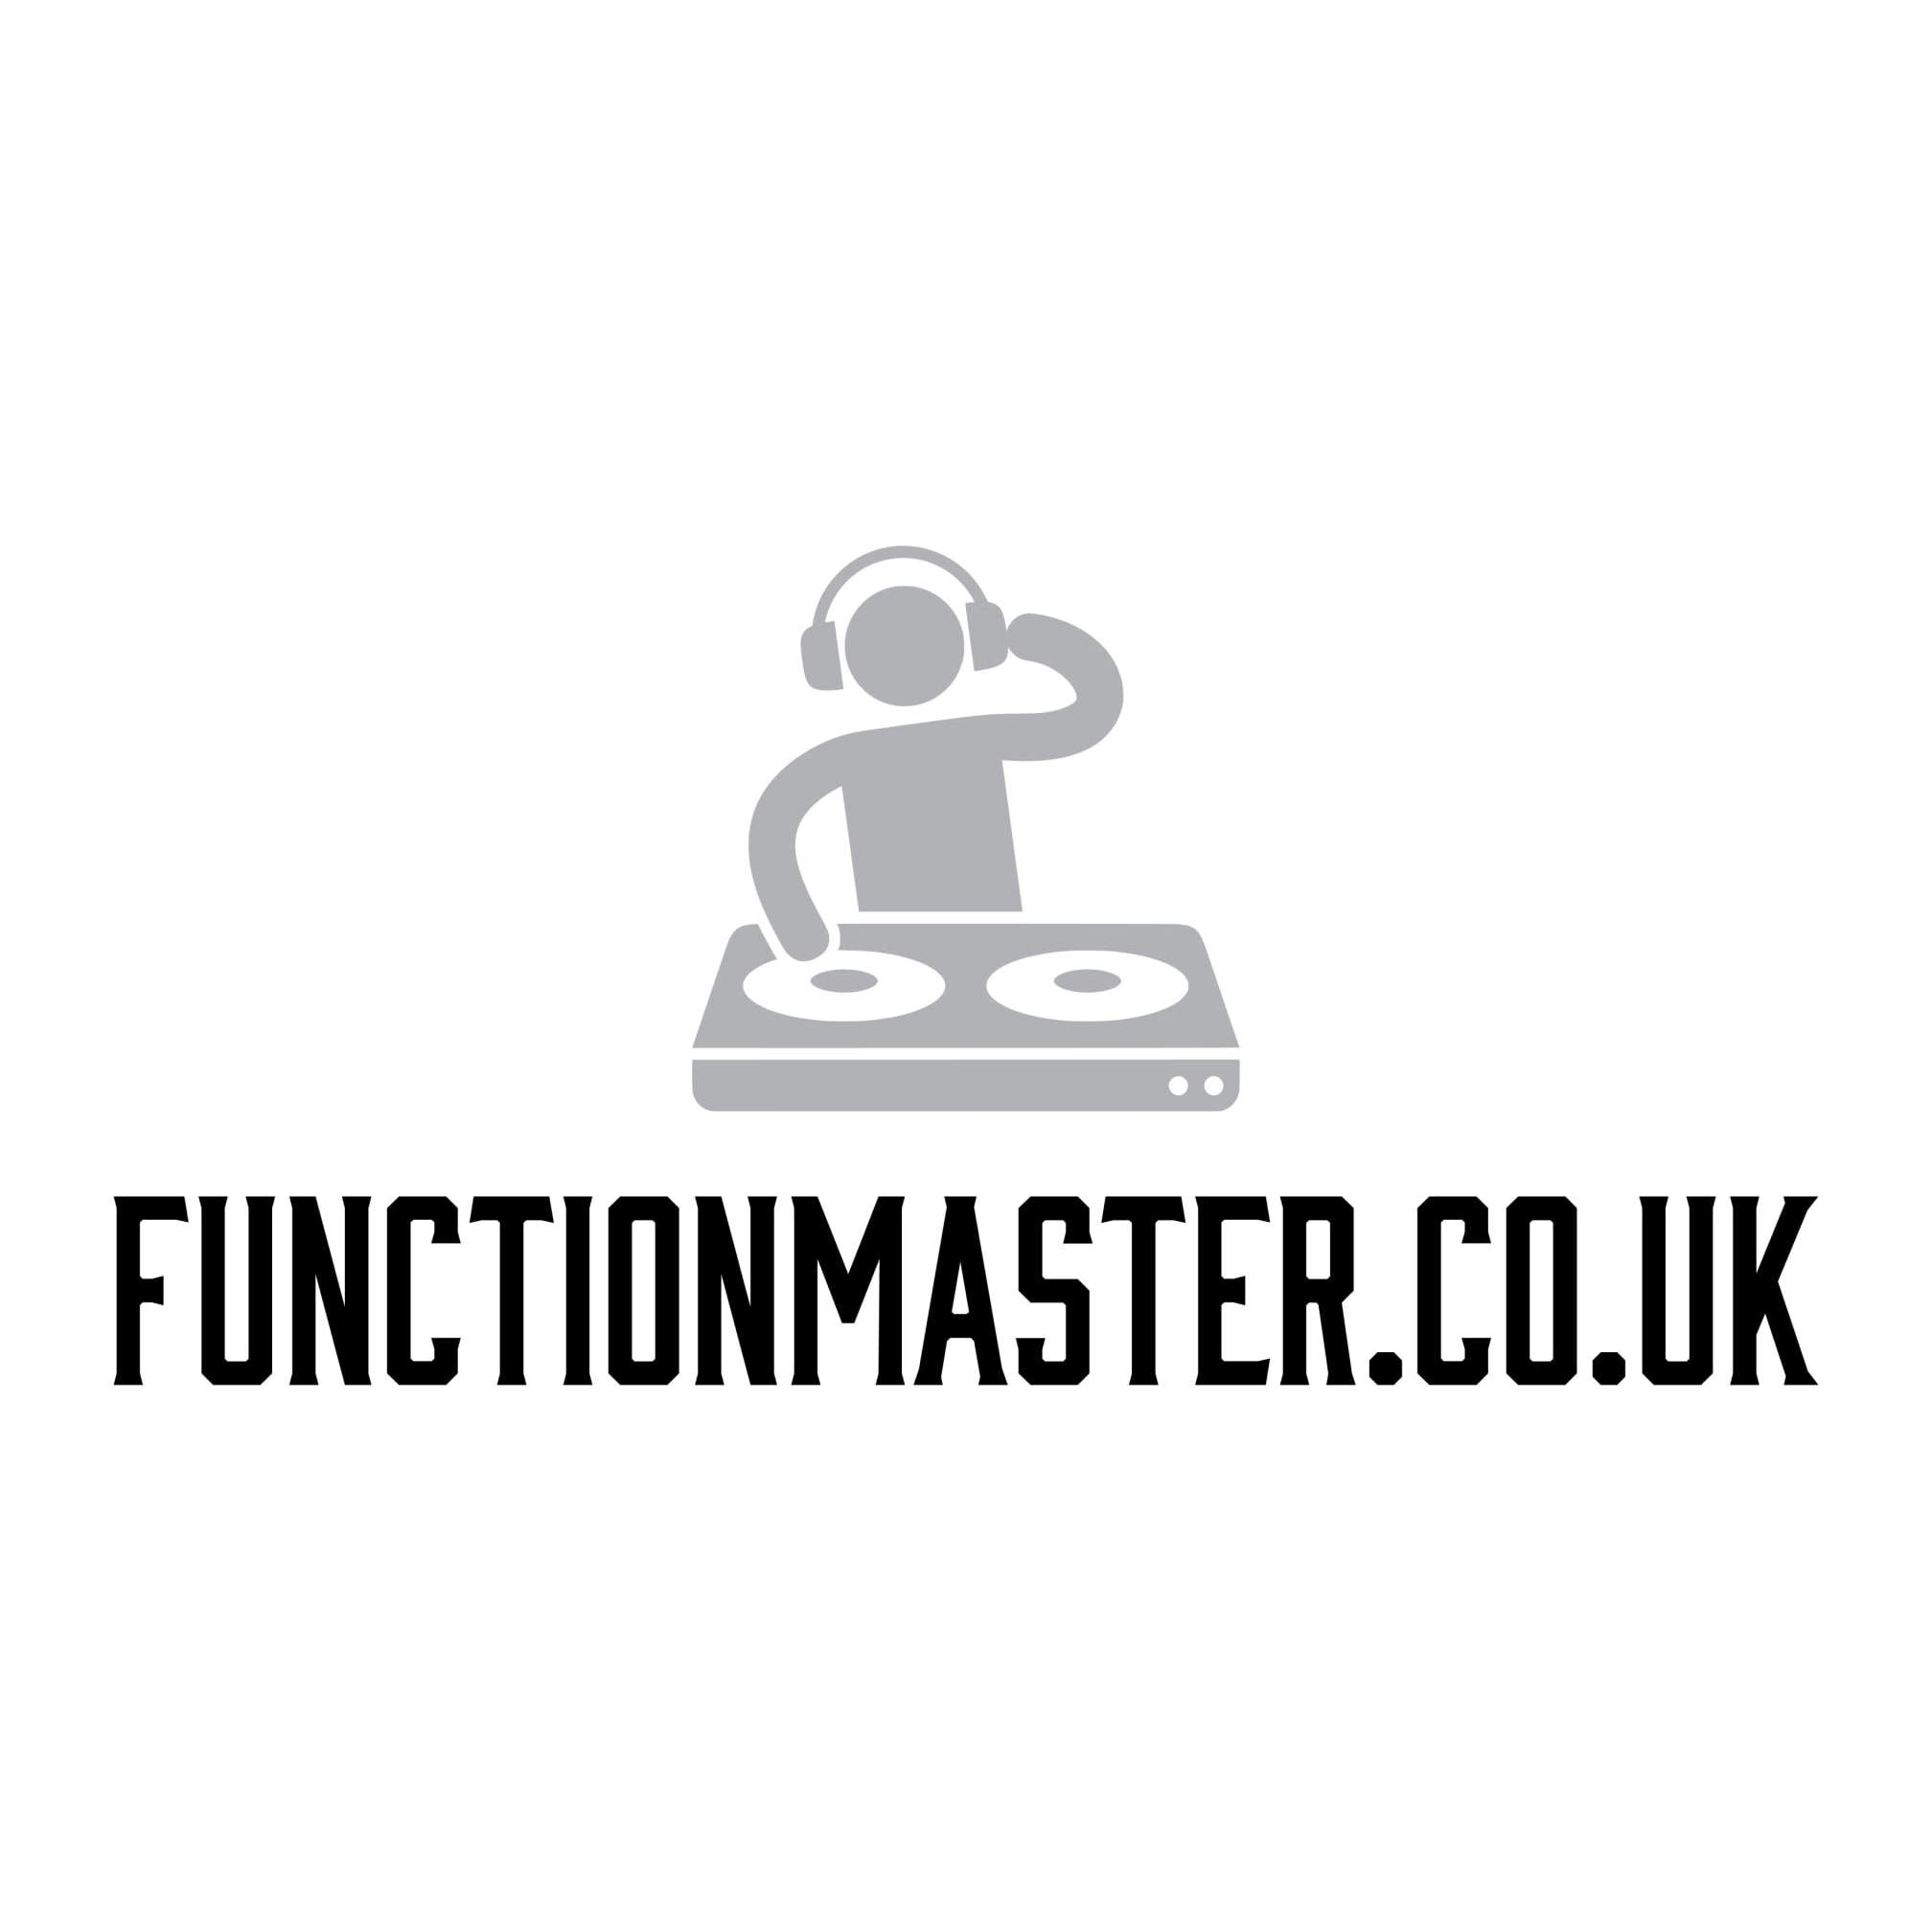 functionMaster.co.uk - Deal, Kent CT14 9BB - 08001 935989 | ShowMeLocal.com